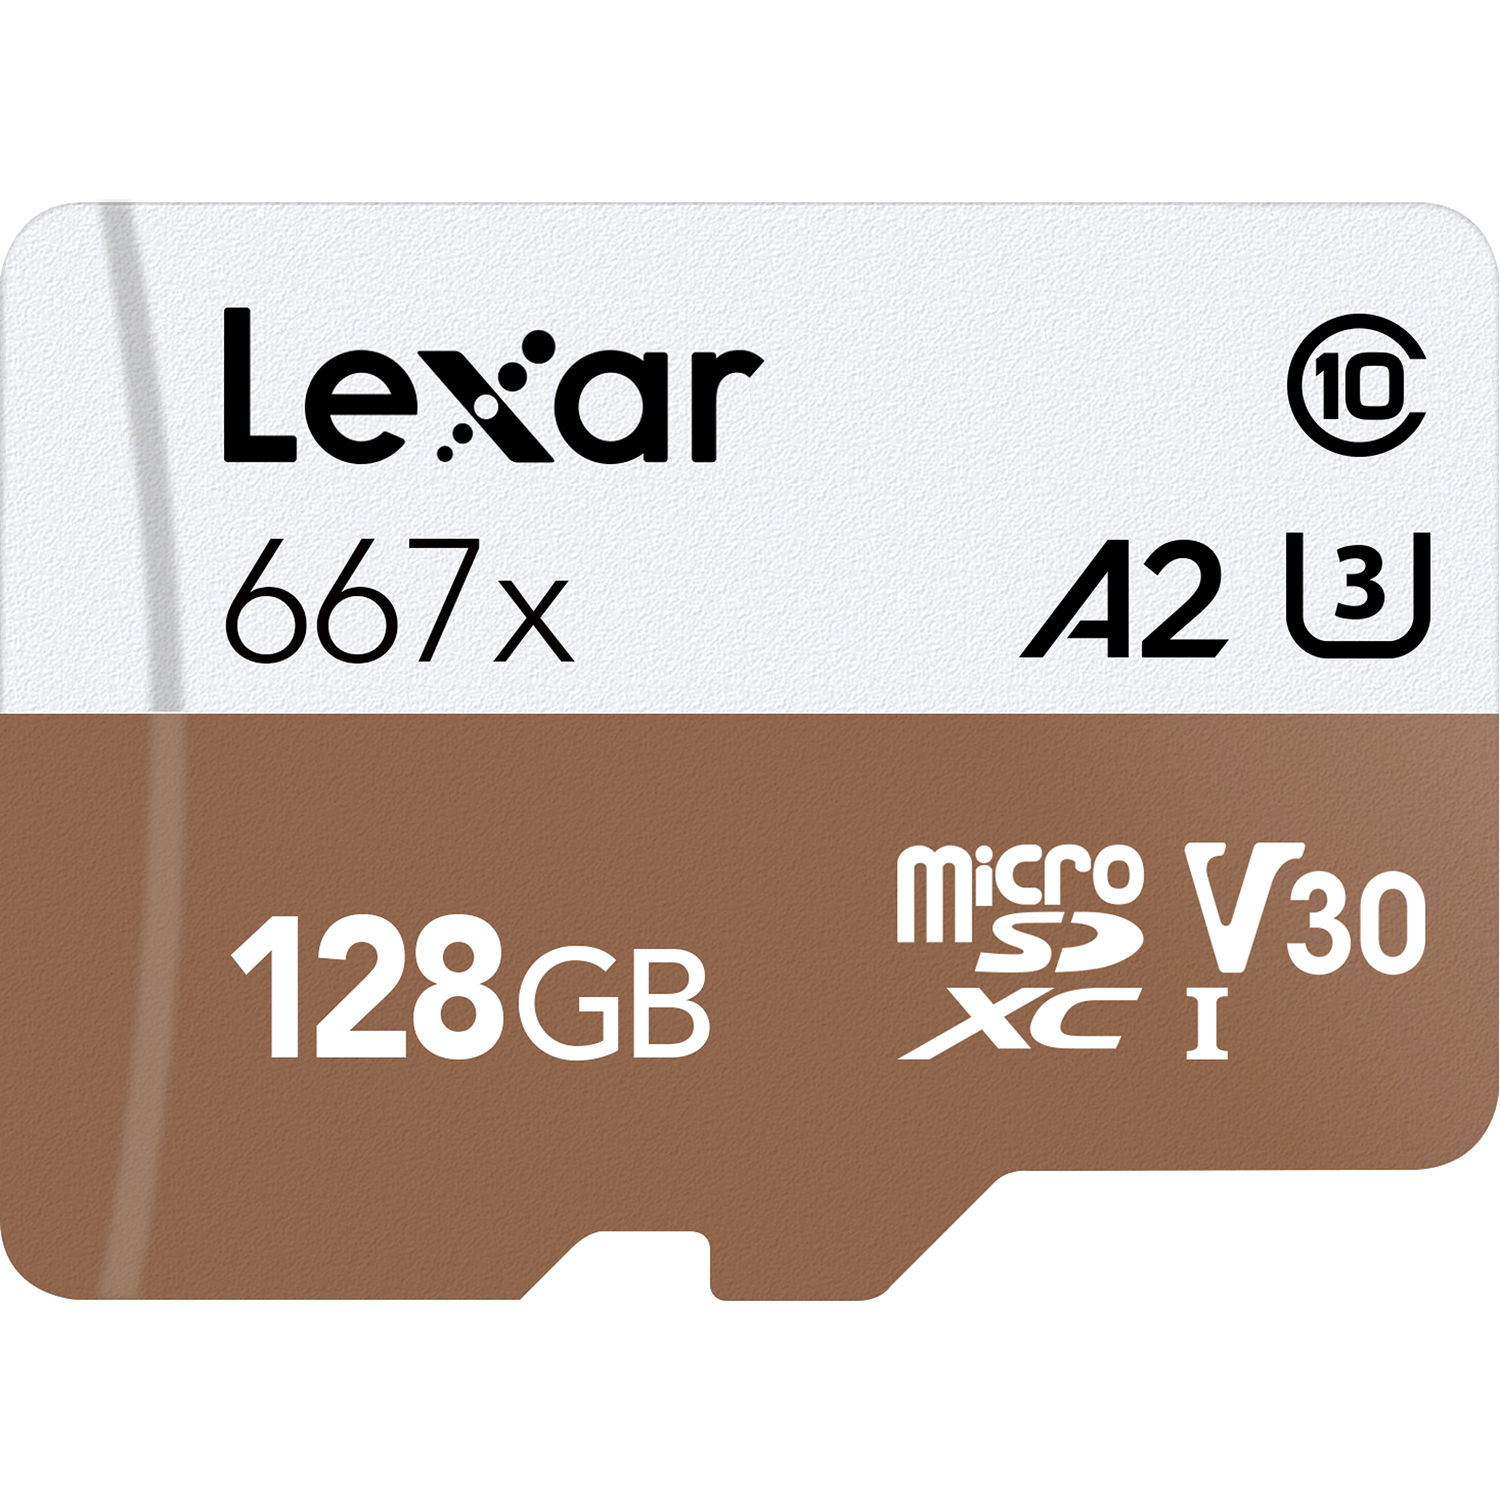 Designed for Android Smartphones 128GB Micro SD SDXC 128GB Memory Card High Speed Class 10 with Micro SD Adapter Tablets